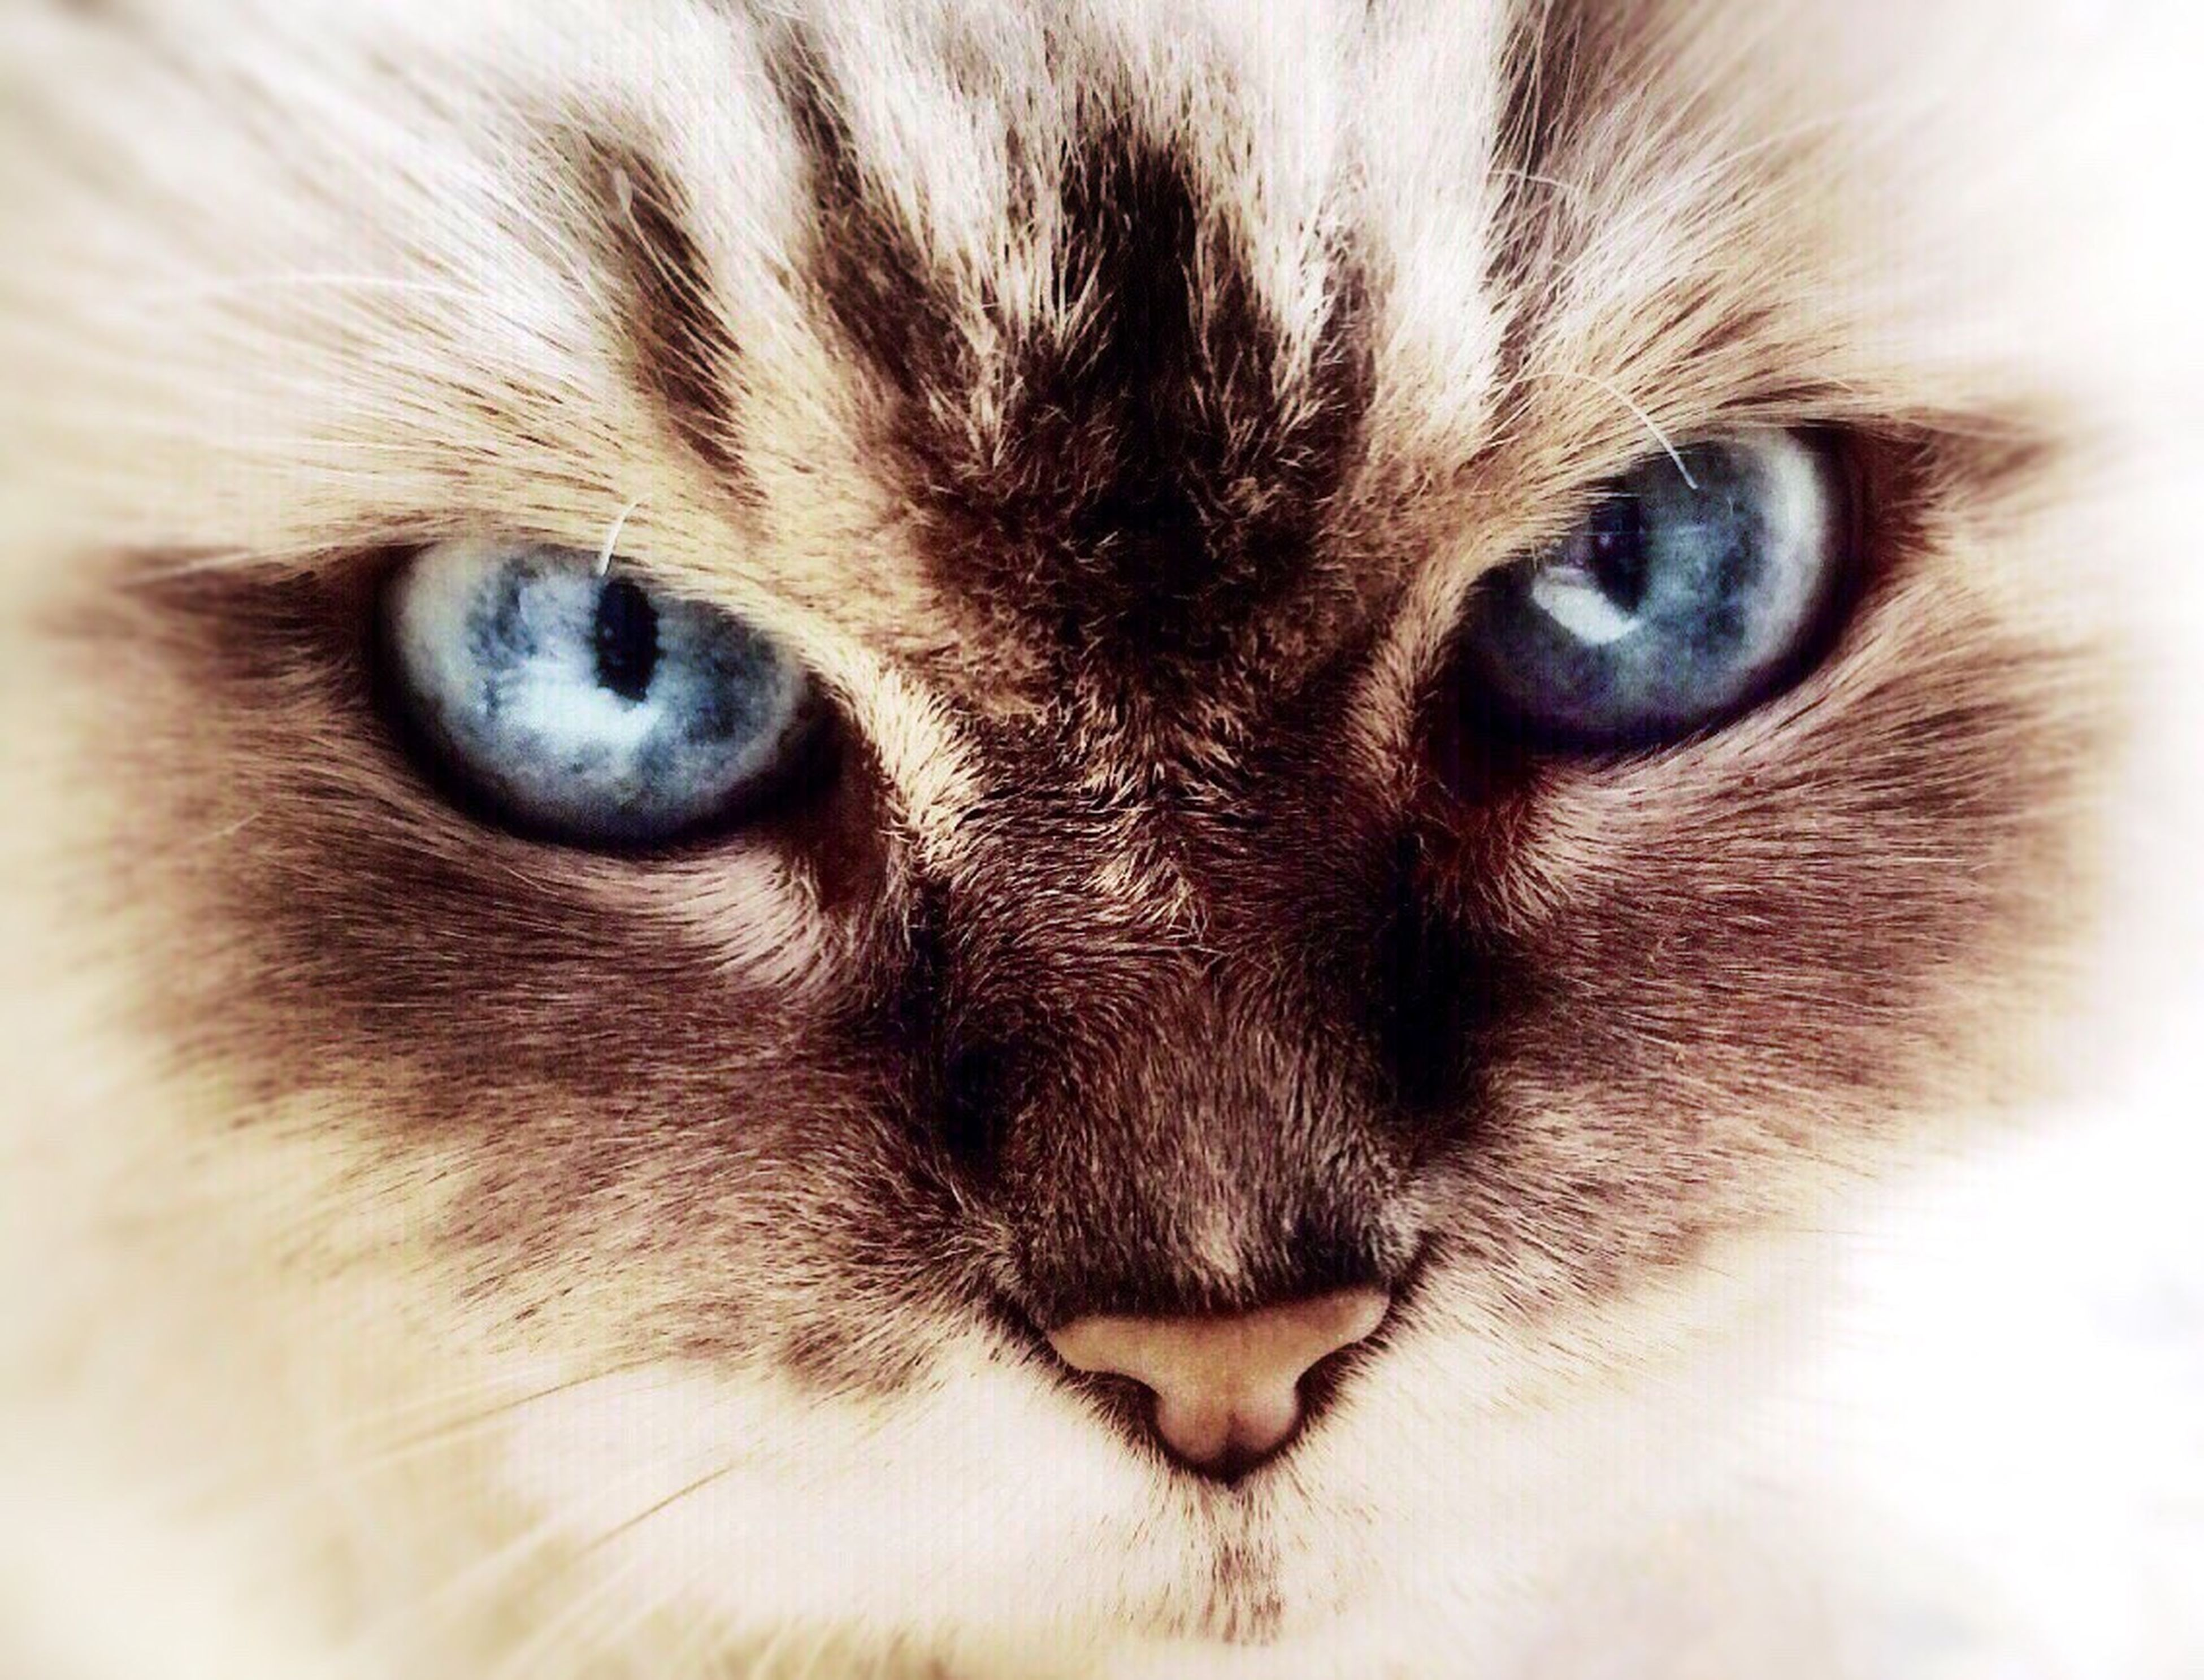 domestic cat, cat, animal themes, one animal, pets, feline, whisker, domestic animals, animal eye, portrait, looking at camera, mammal, animal head, close-up, full frame, staring, backgrounds, animal body part, extreme close-up, indoors